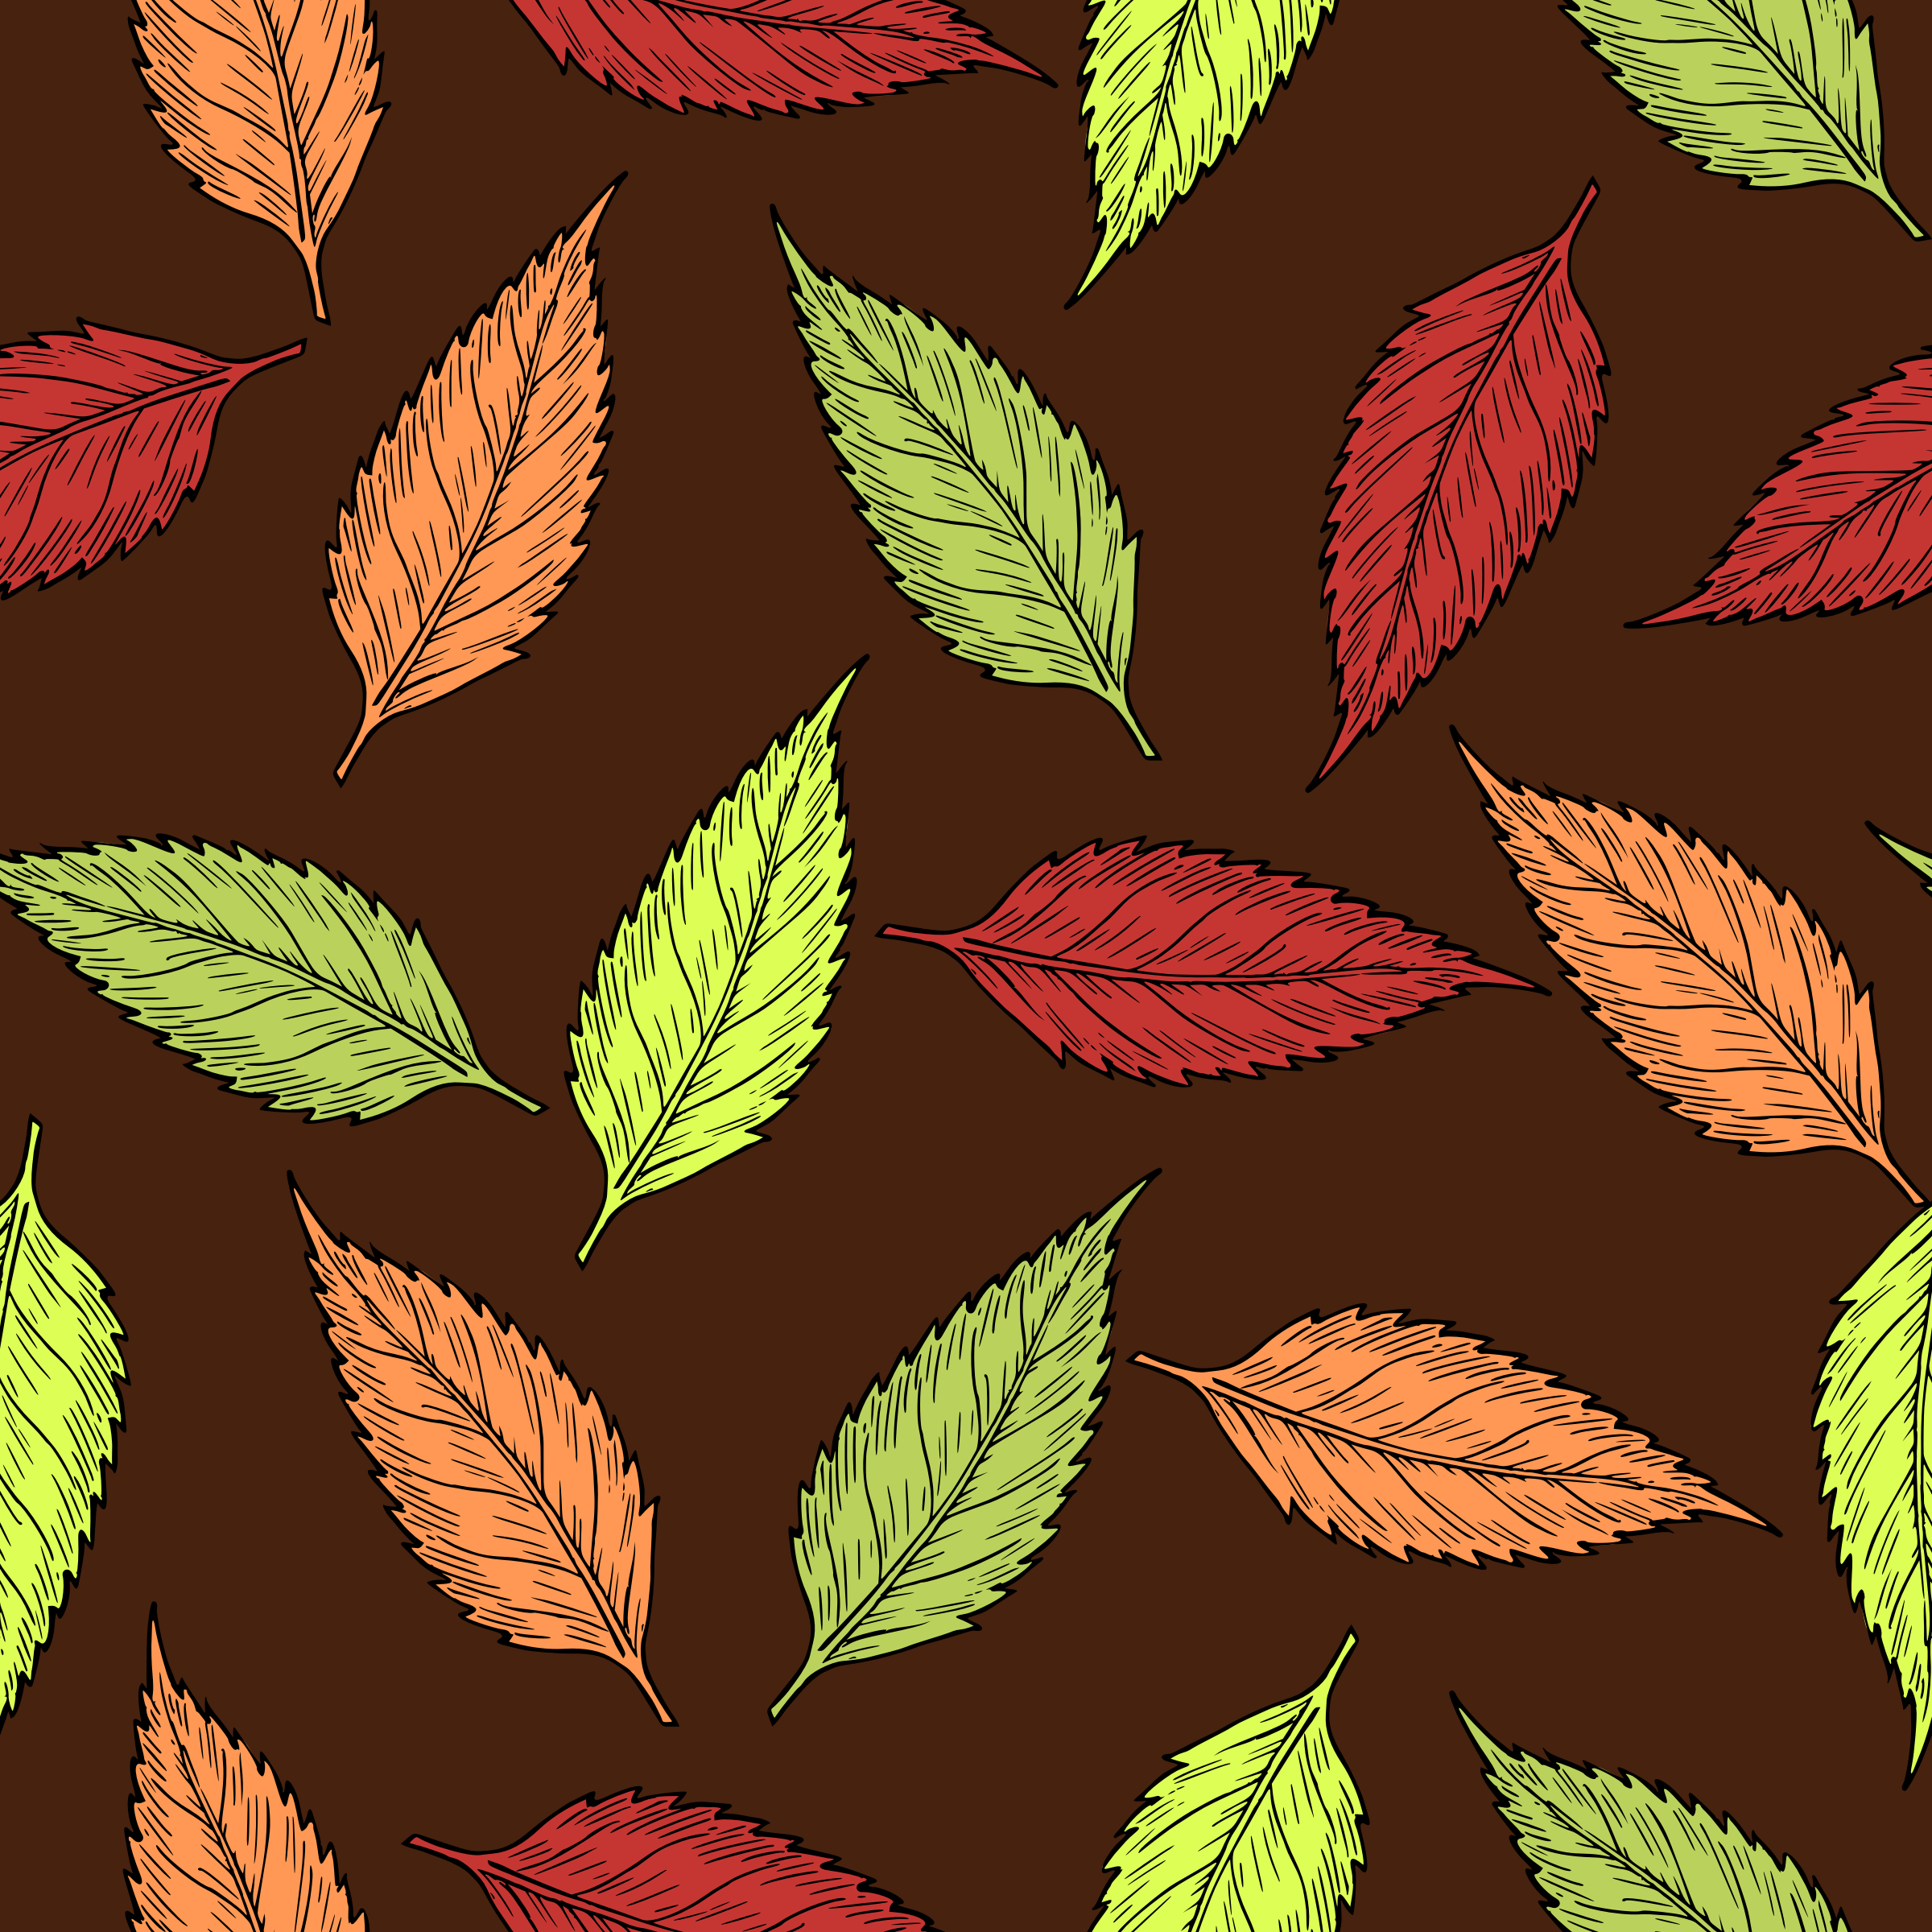 Autumn leaves pattern by Firkin